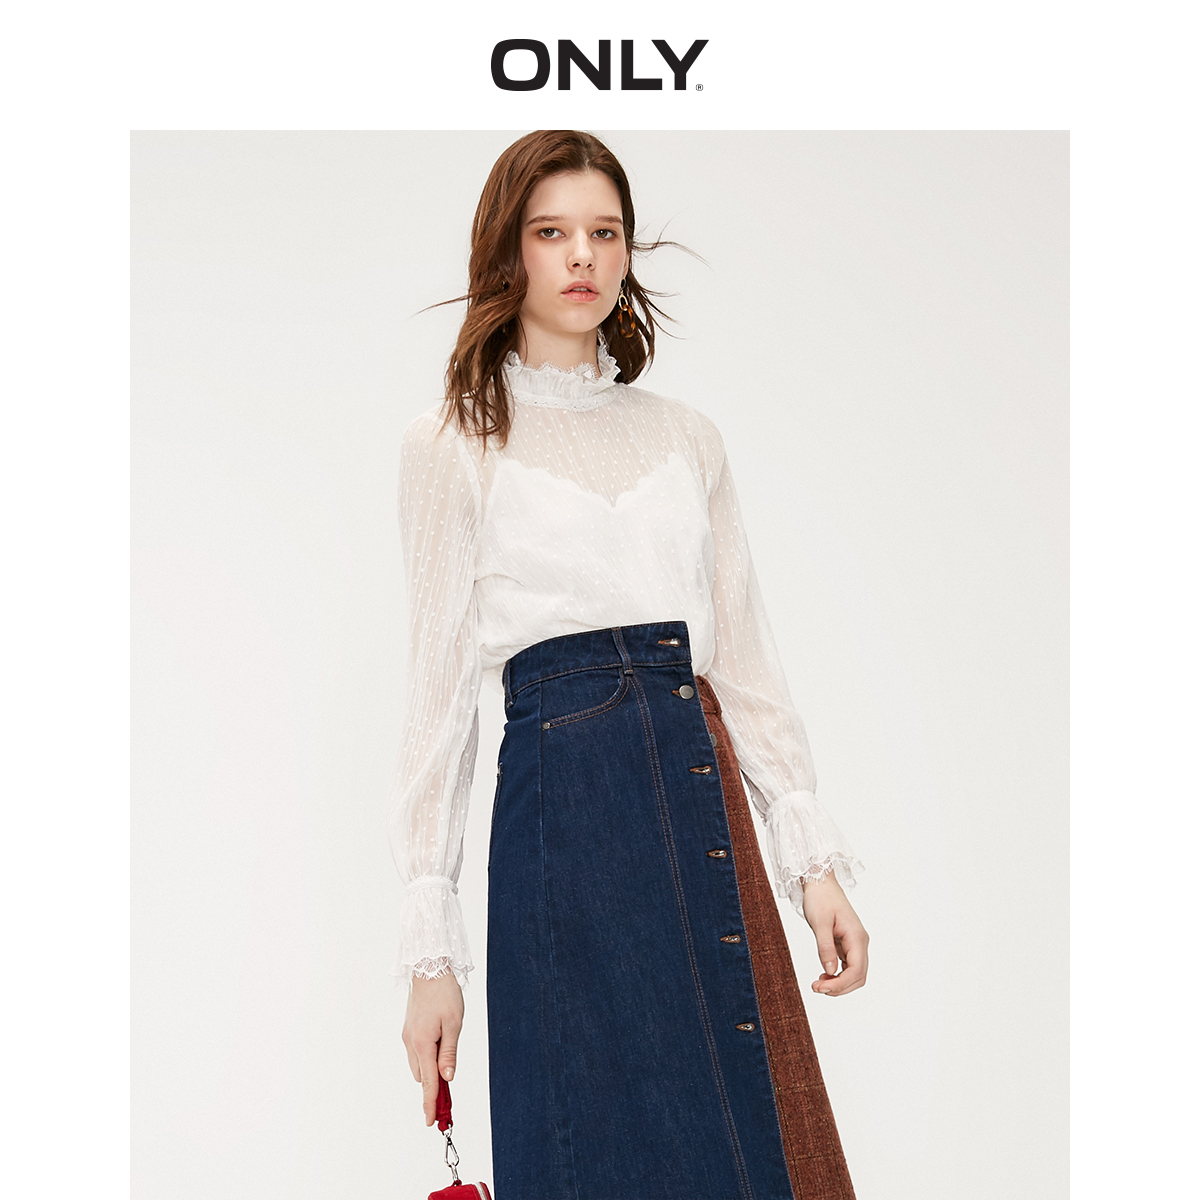 ONLY Autumn Winter Women's Loose Fit White Dot Laced Chiffon Shirt | 119207583